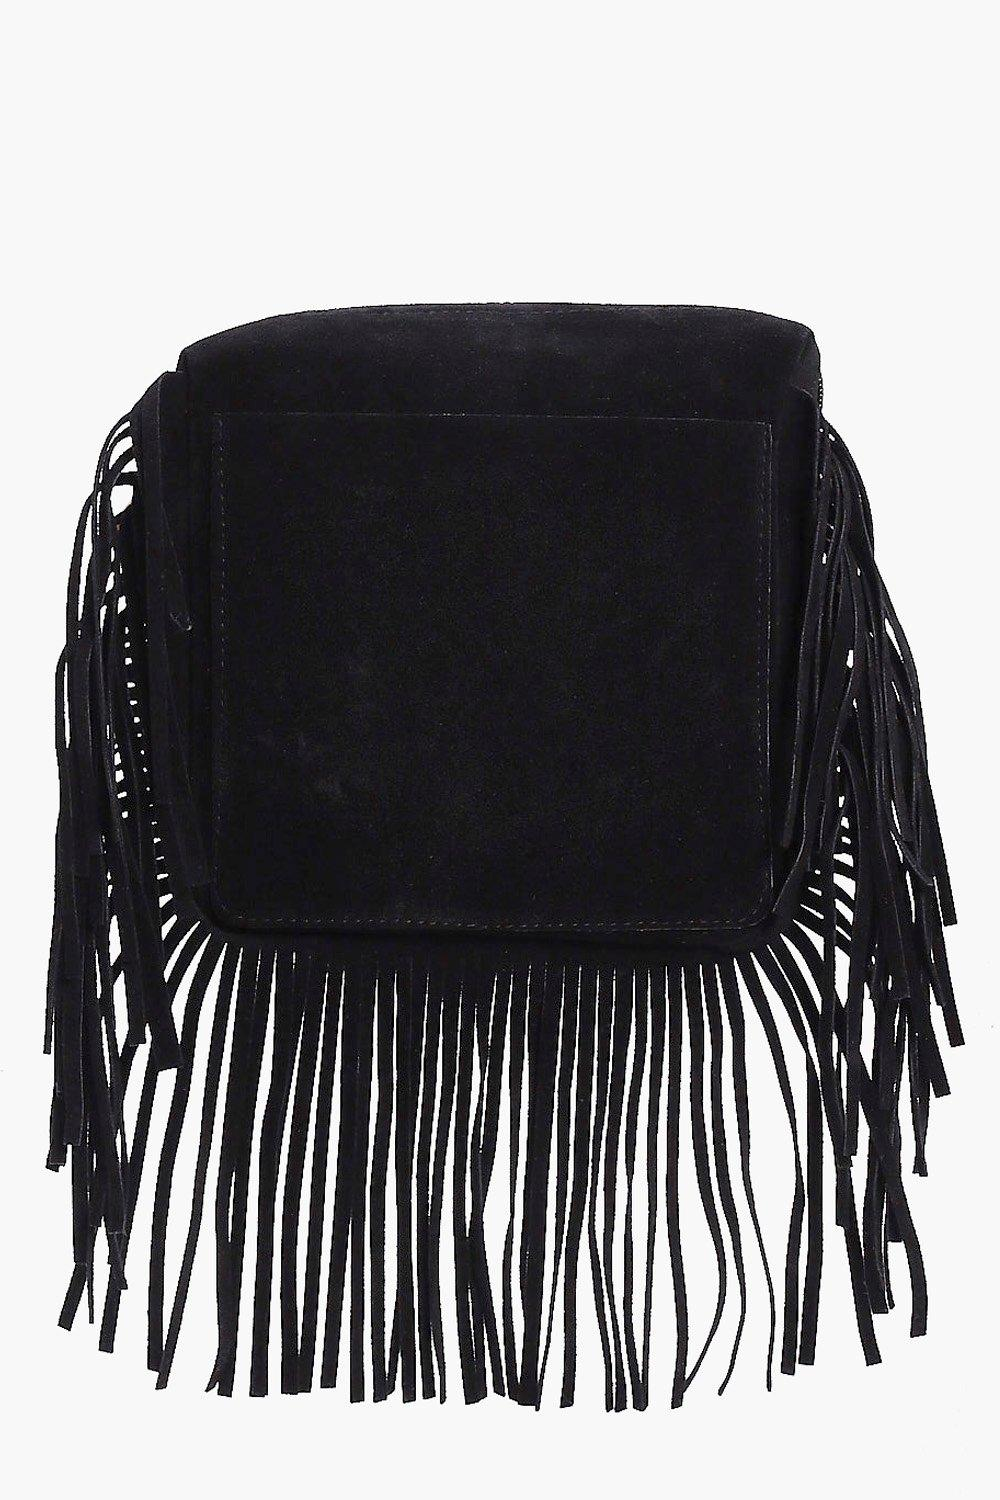 Suedette Fringed Cross Body Bag - black - Laura Su